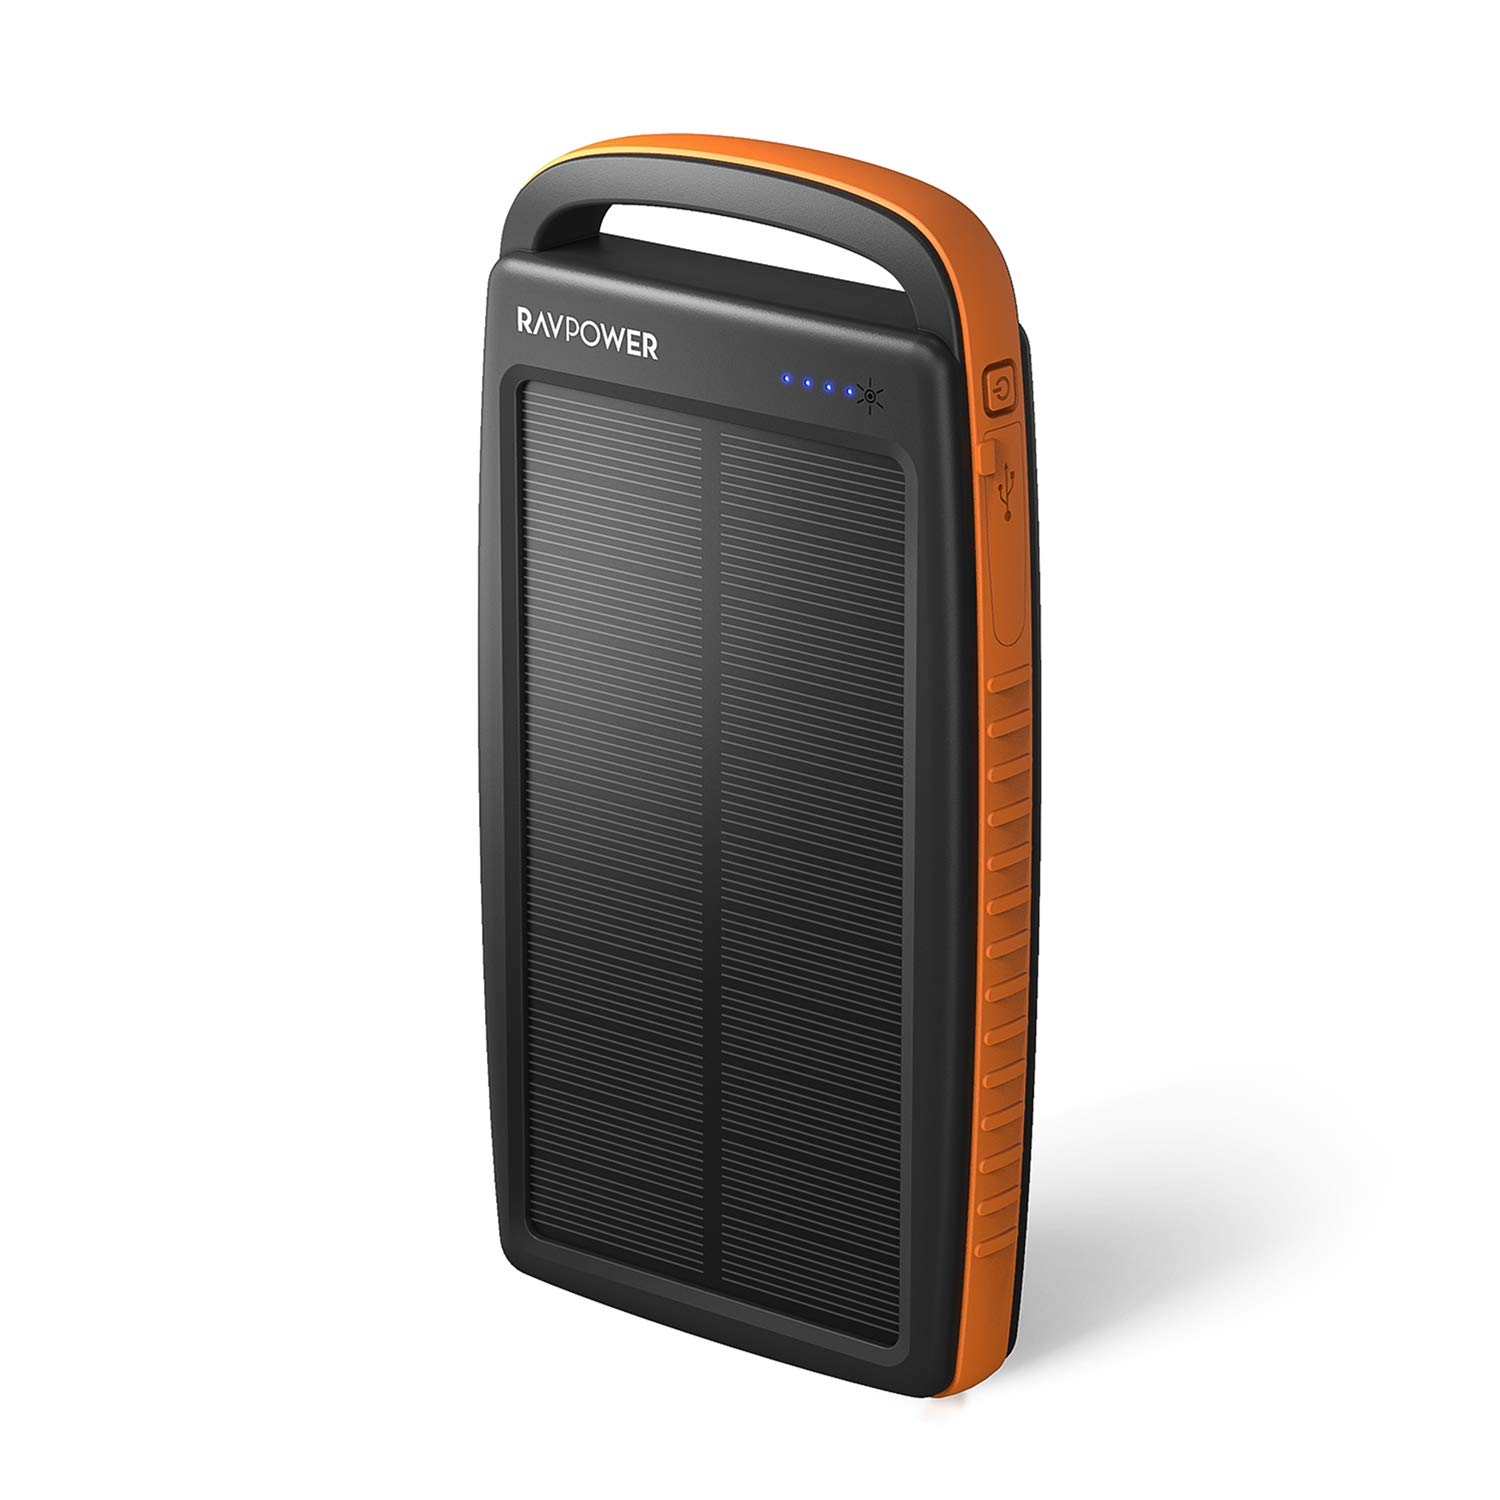 Solar Charger 20000mAh RAVPower Portable Charger Solar Power Bank with Dual 2.4A Outputs, External Battery Pack with Flashlight for Smartphones, Tablets and More(Orange) by RAVPower